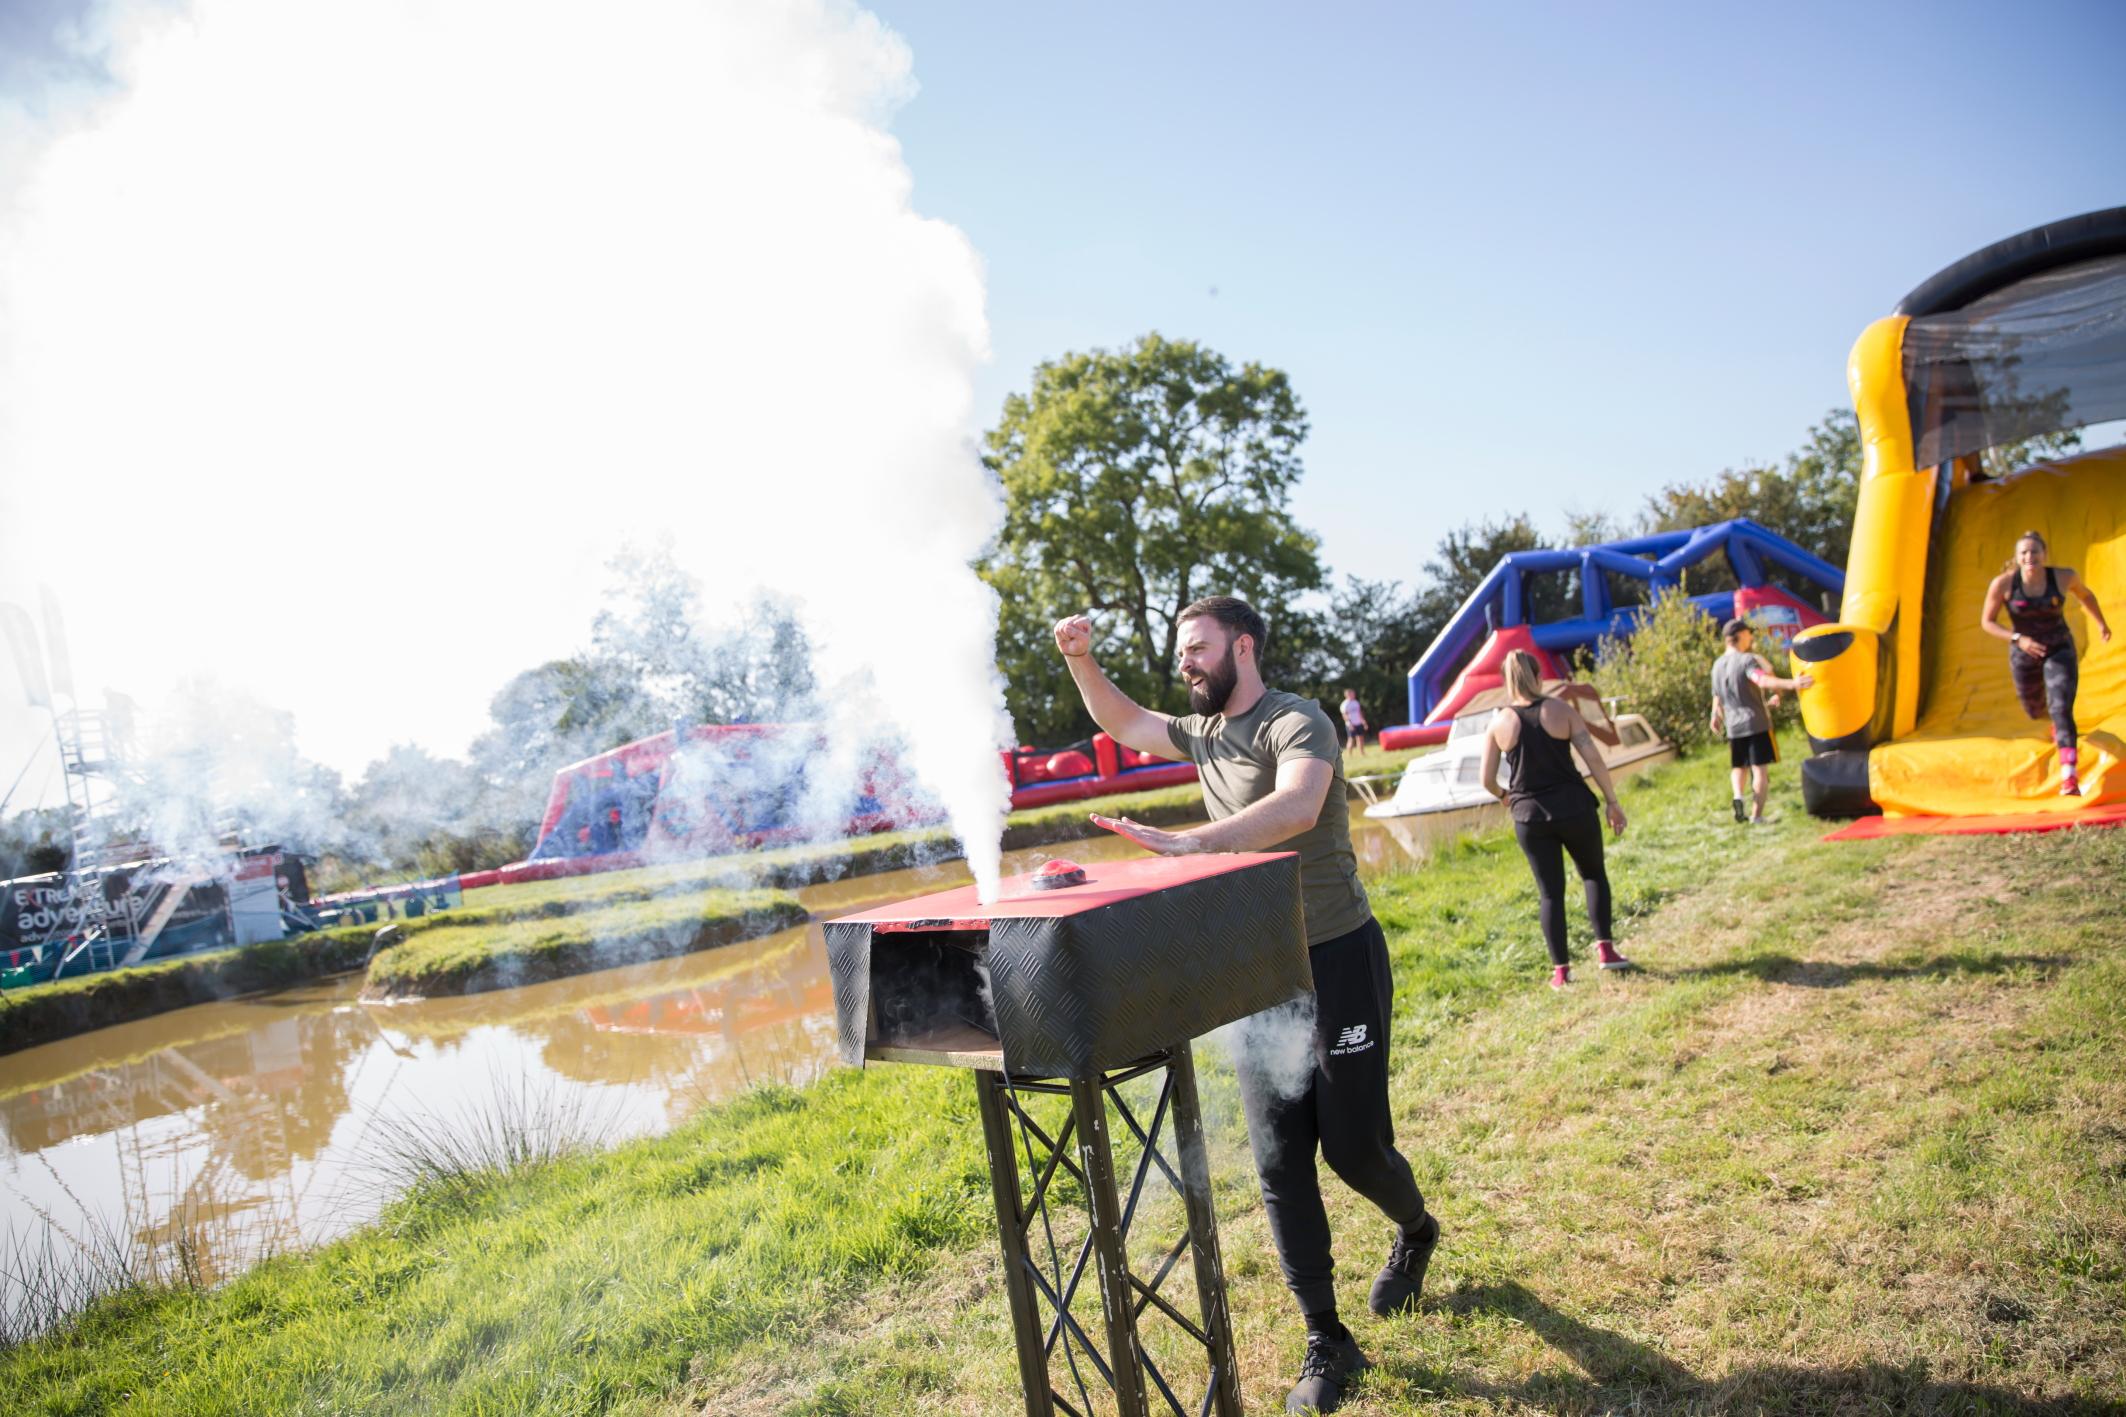 A man releases smoke plumes into the air by pushing a big button signifying his successful completion of a difficult obstacle course race. He is smiling and pumping his fist into the air in celebration.